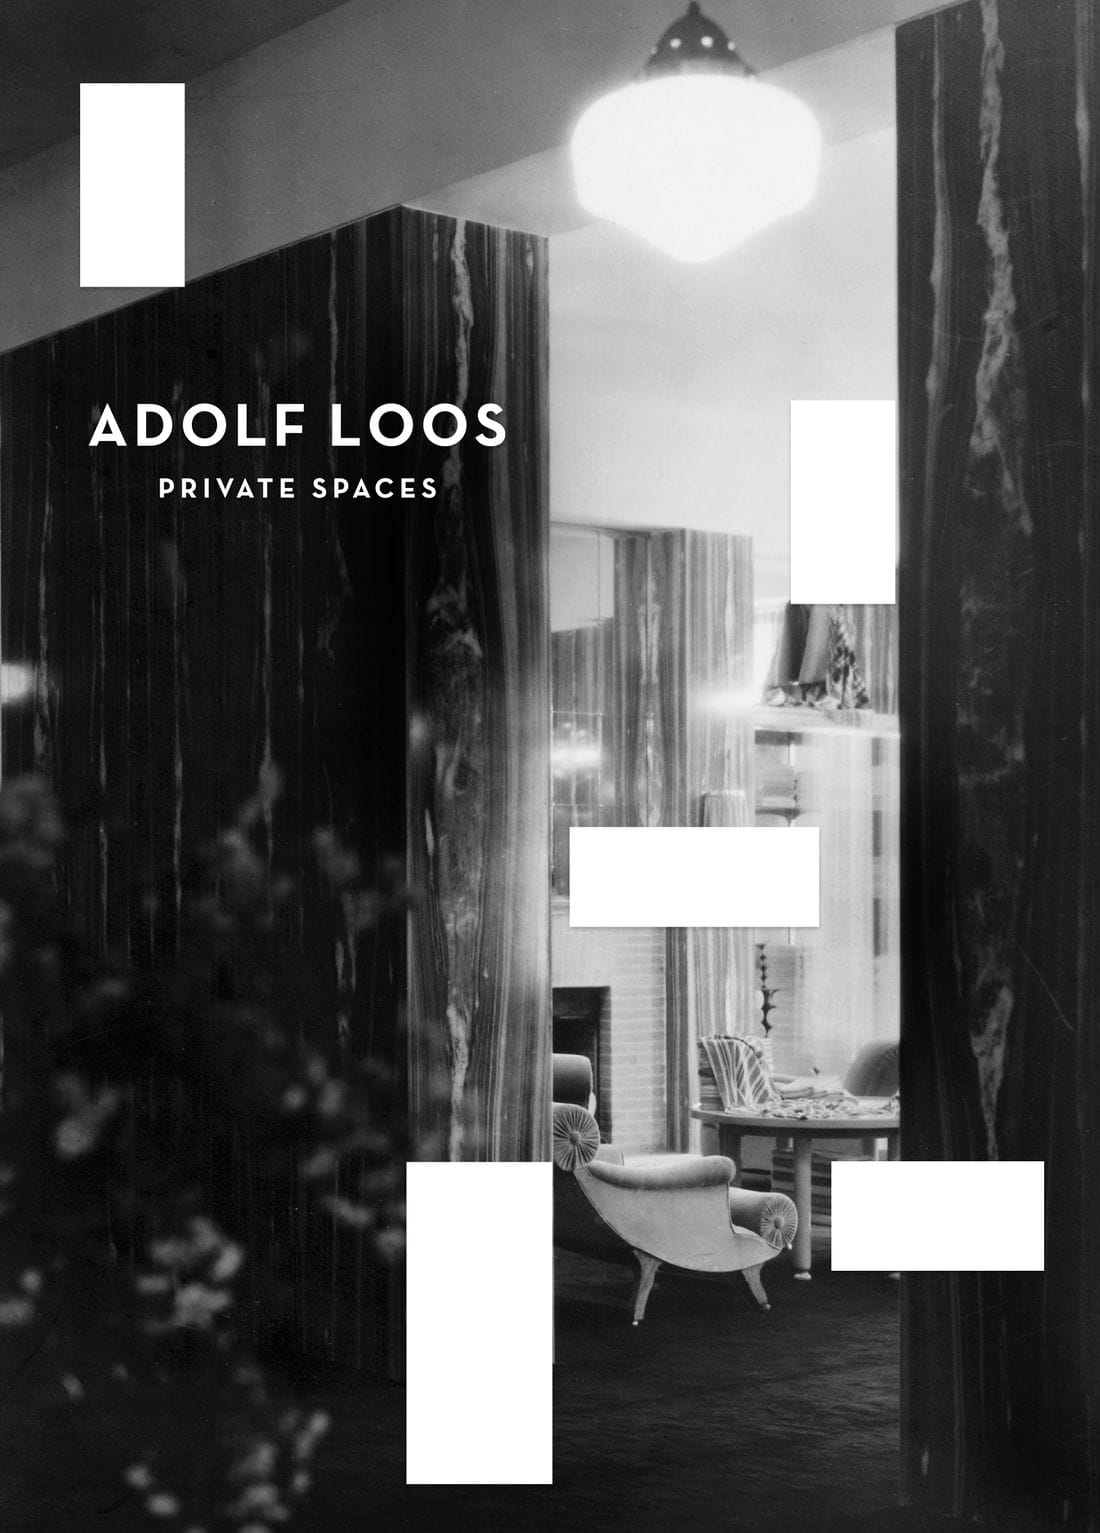 ADOLF LOOS. PRIVATE SPACES